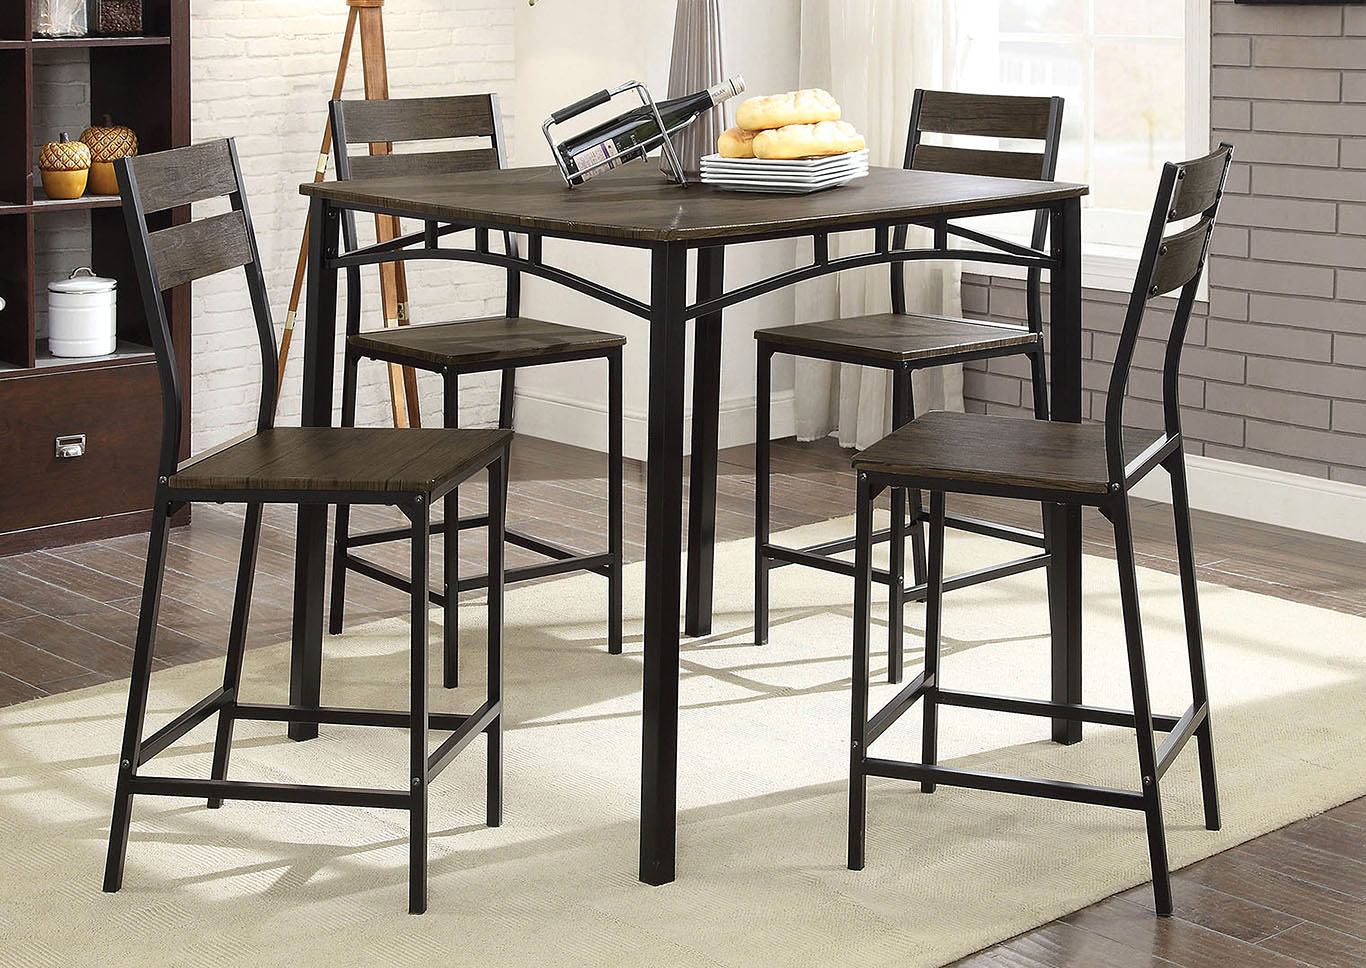 Westport Antique Brown/Black 5 PC. Counter Height Table Set,Furniture of America